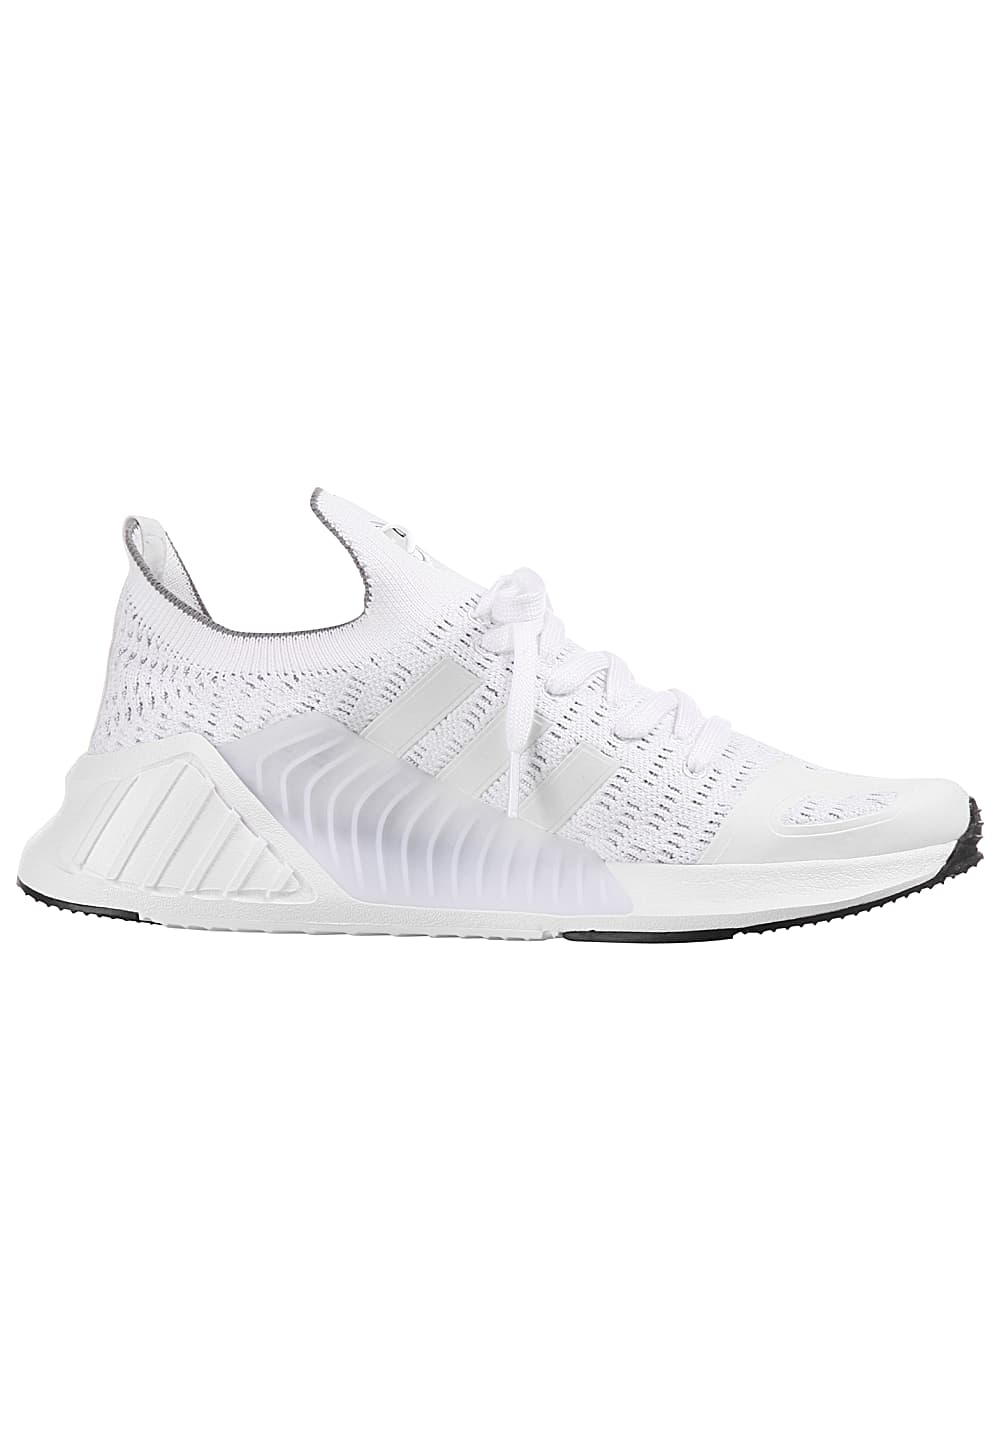 Men White Sneakers Pk Originals For Adidas Climacool 0217 YD29EHWI